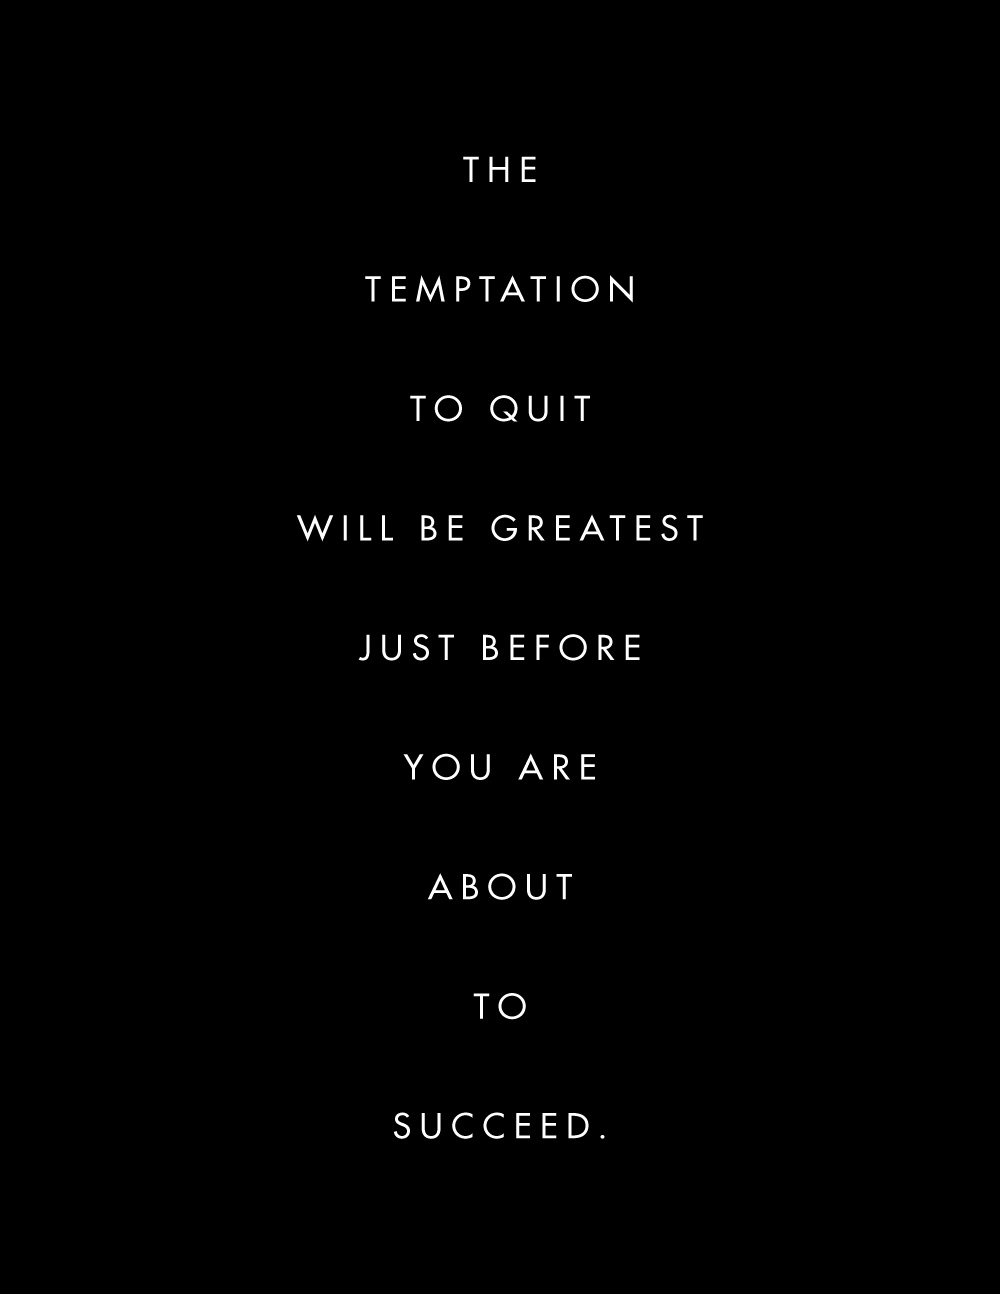 The temptation to quit will be greatest just